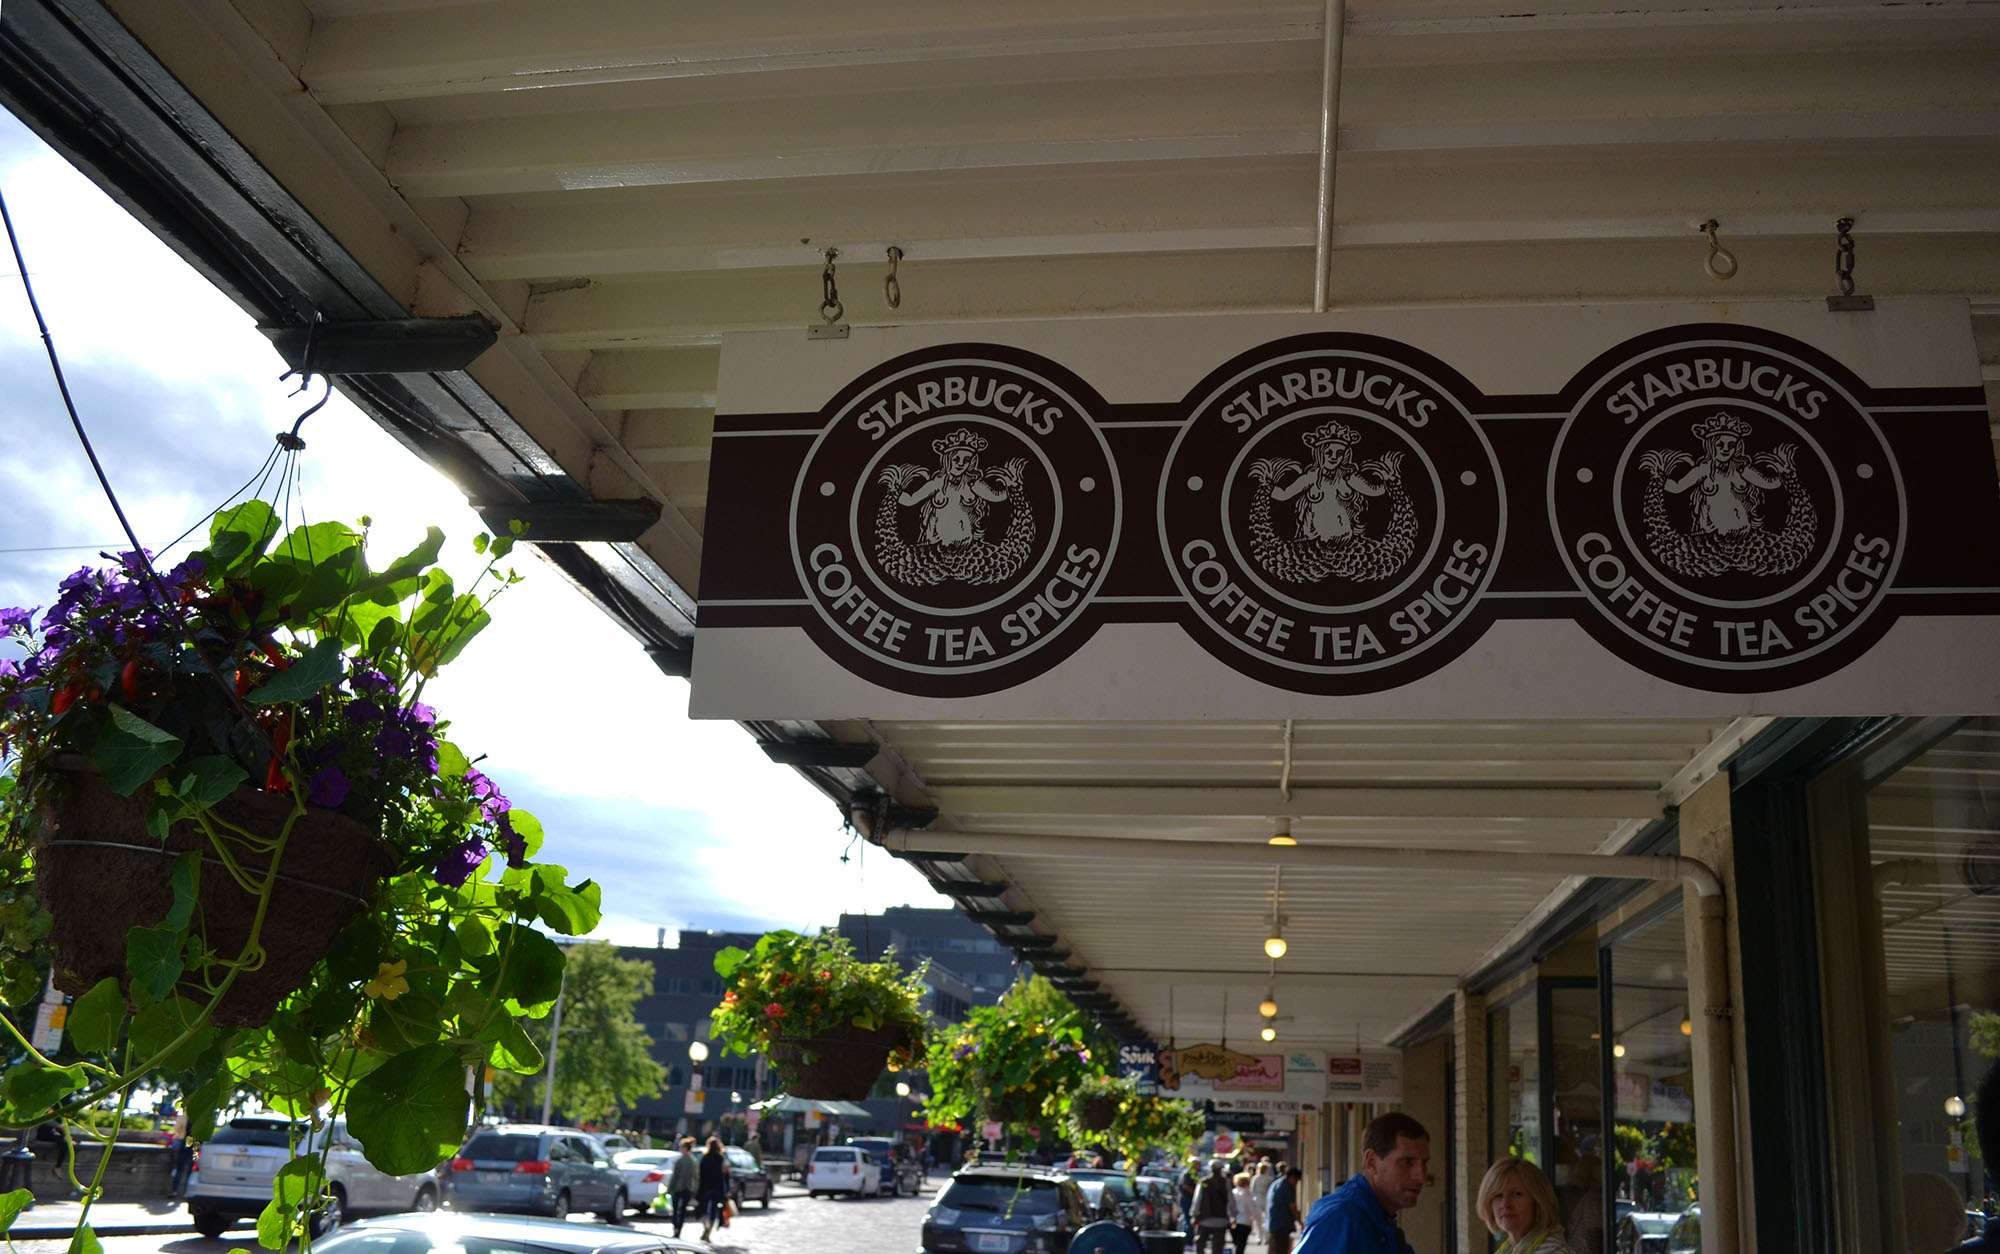 The First Starbucks